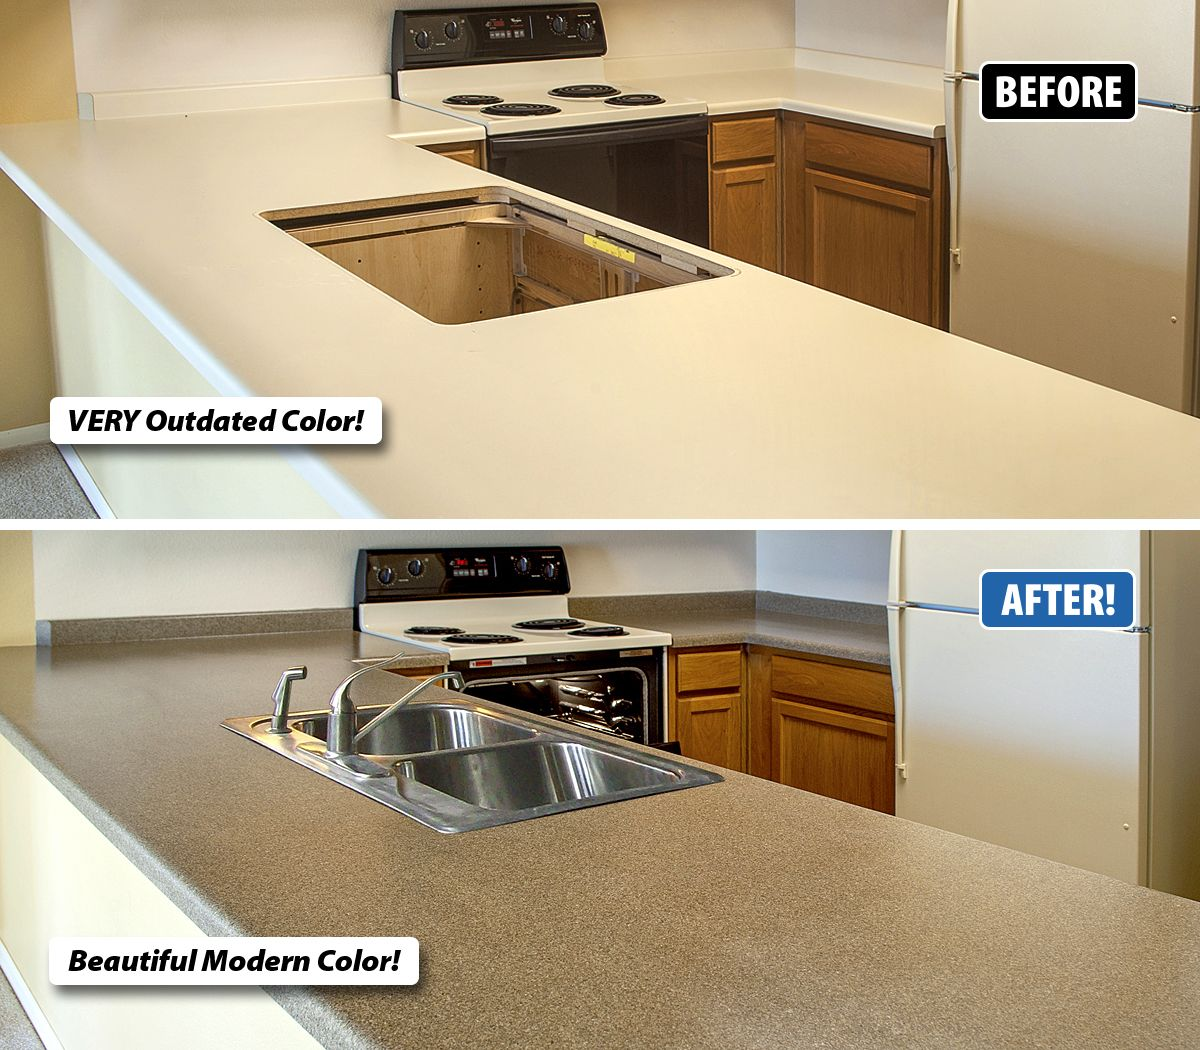 Refinishing Transforms Outdated Countertops To Likenew Condition Glamorous How Much Does It Cost To Replace Kitchen Cabinets 2018